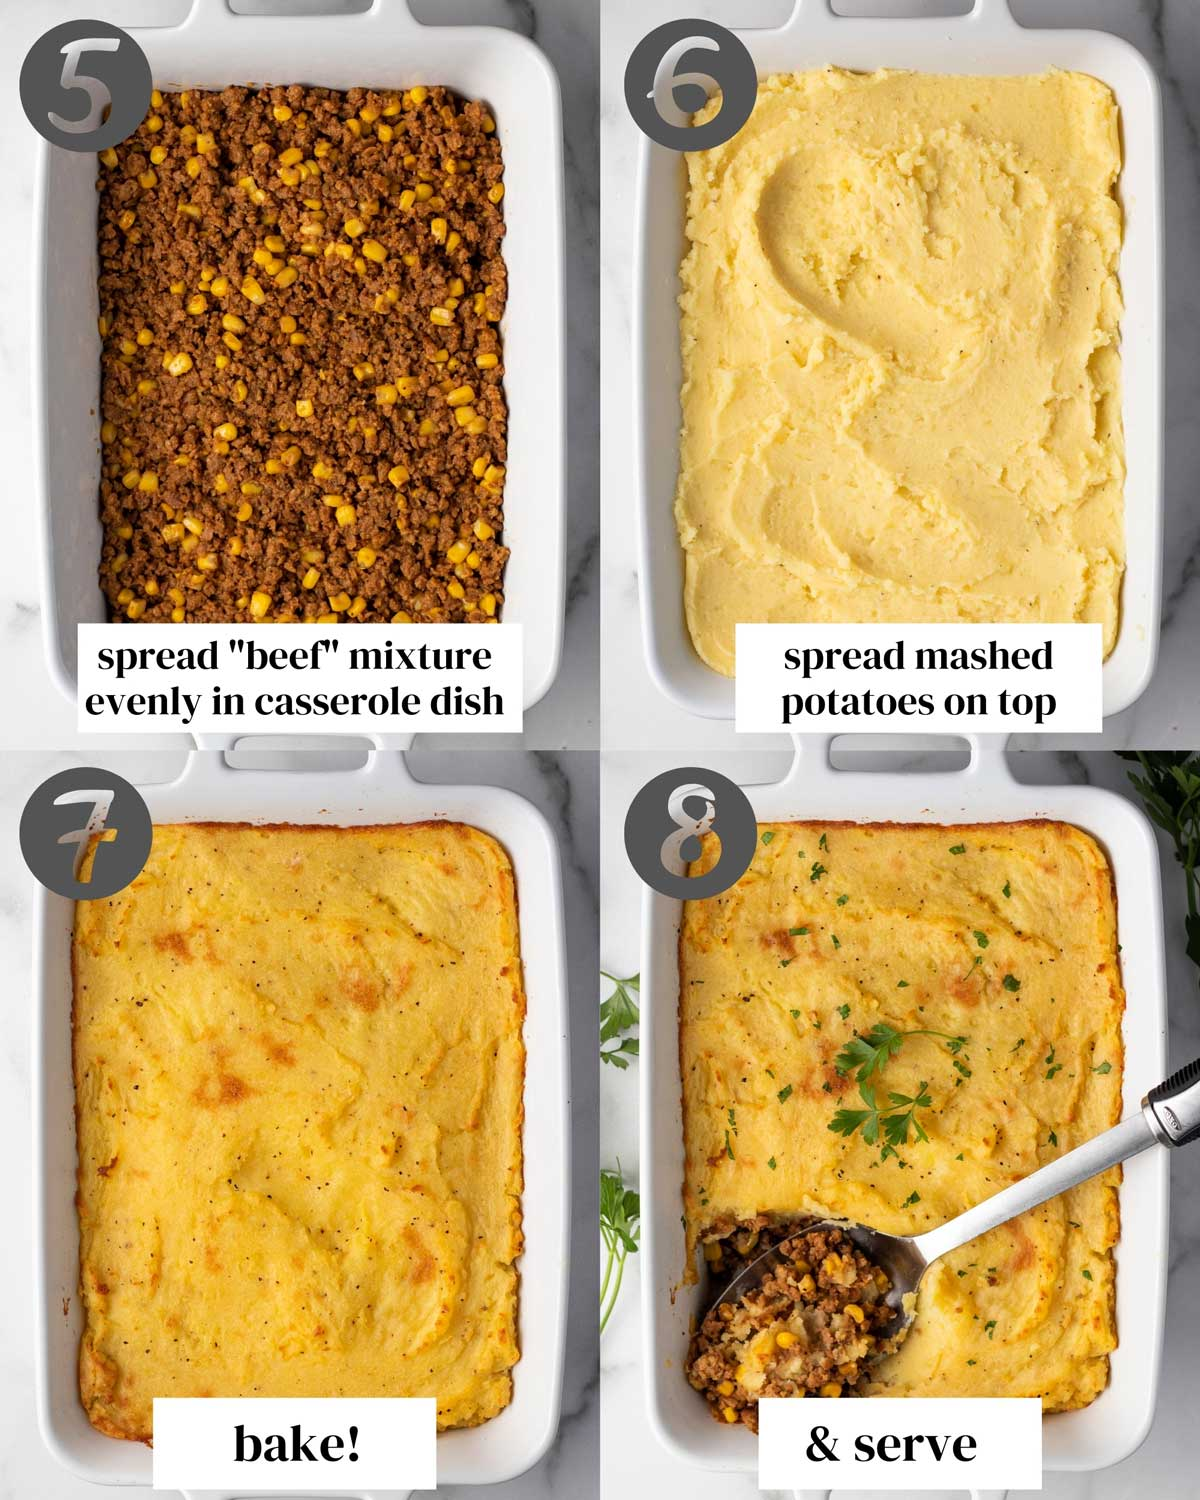 "Collage for steps 5-8. 5) Spread ""beef"" mixture evenly in casserole dish. 6) Spread mashed potatoes on top. 7) Bake! 8) & Serve"